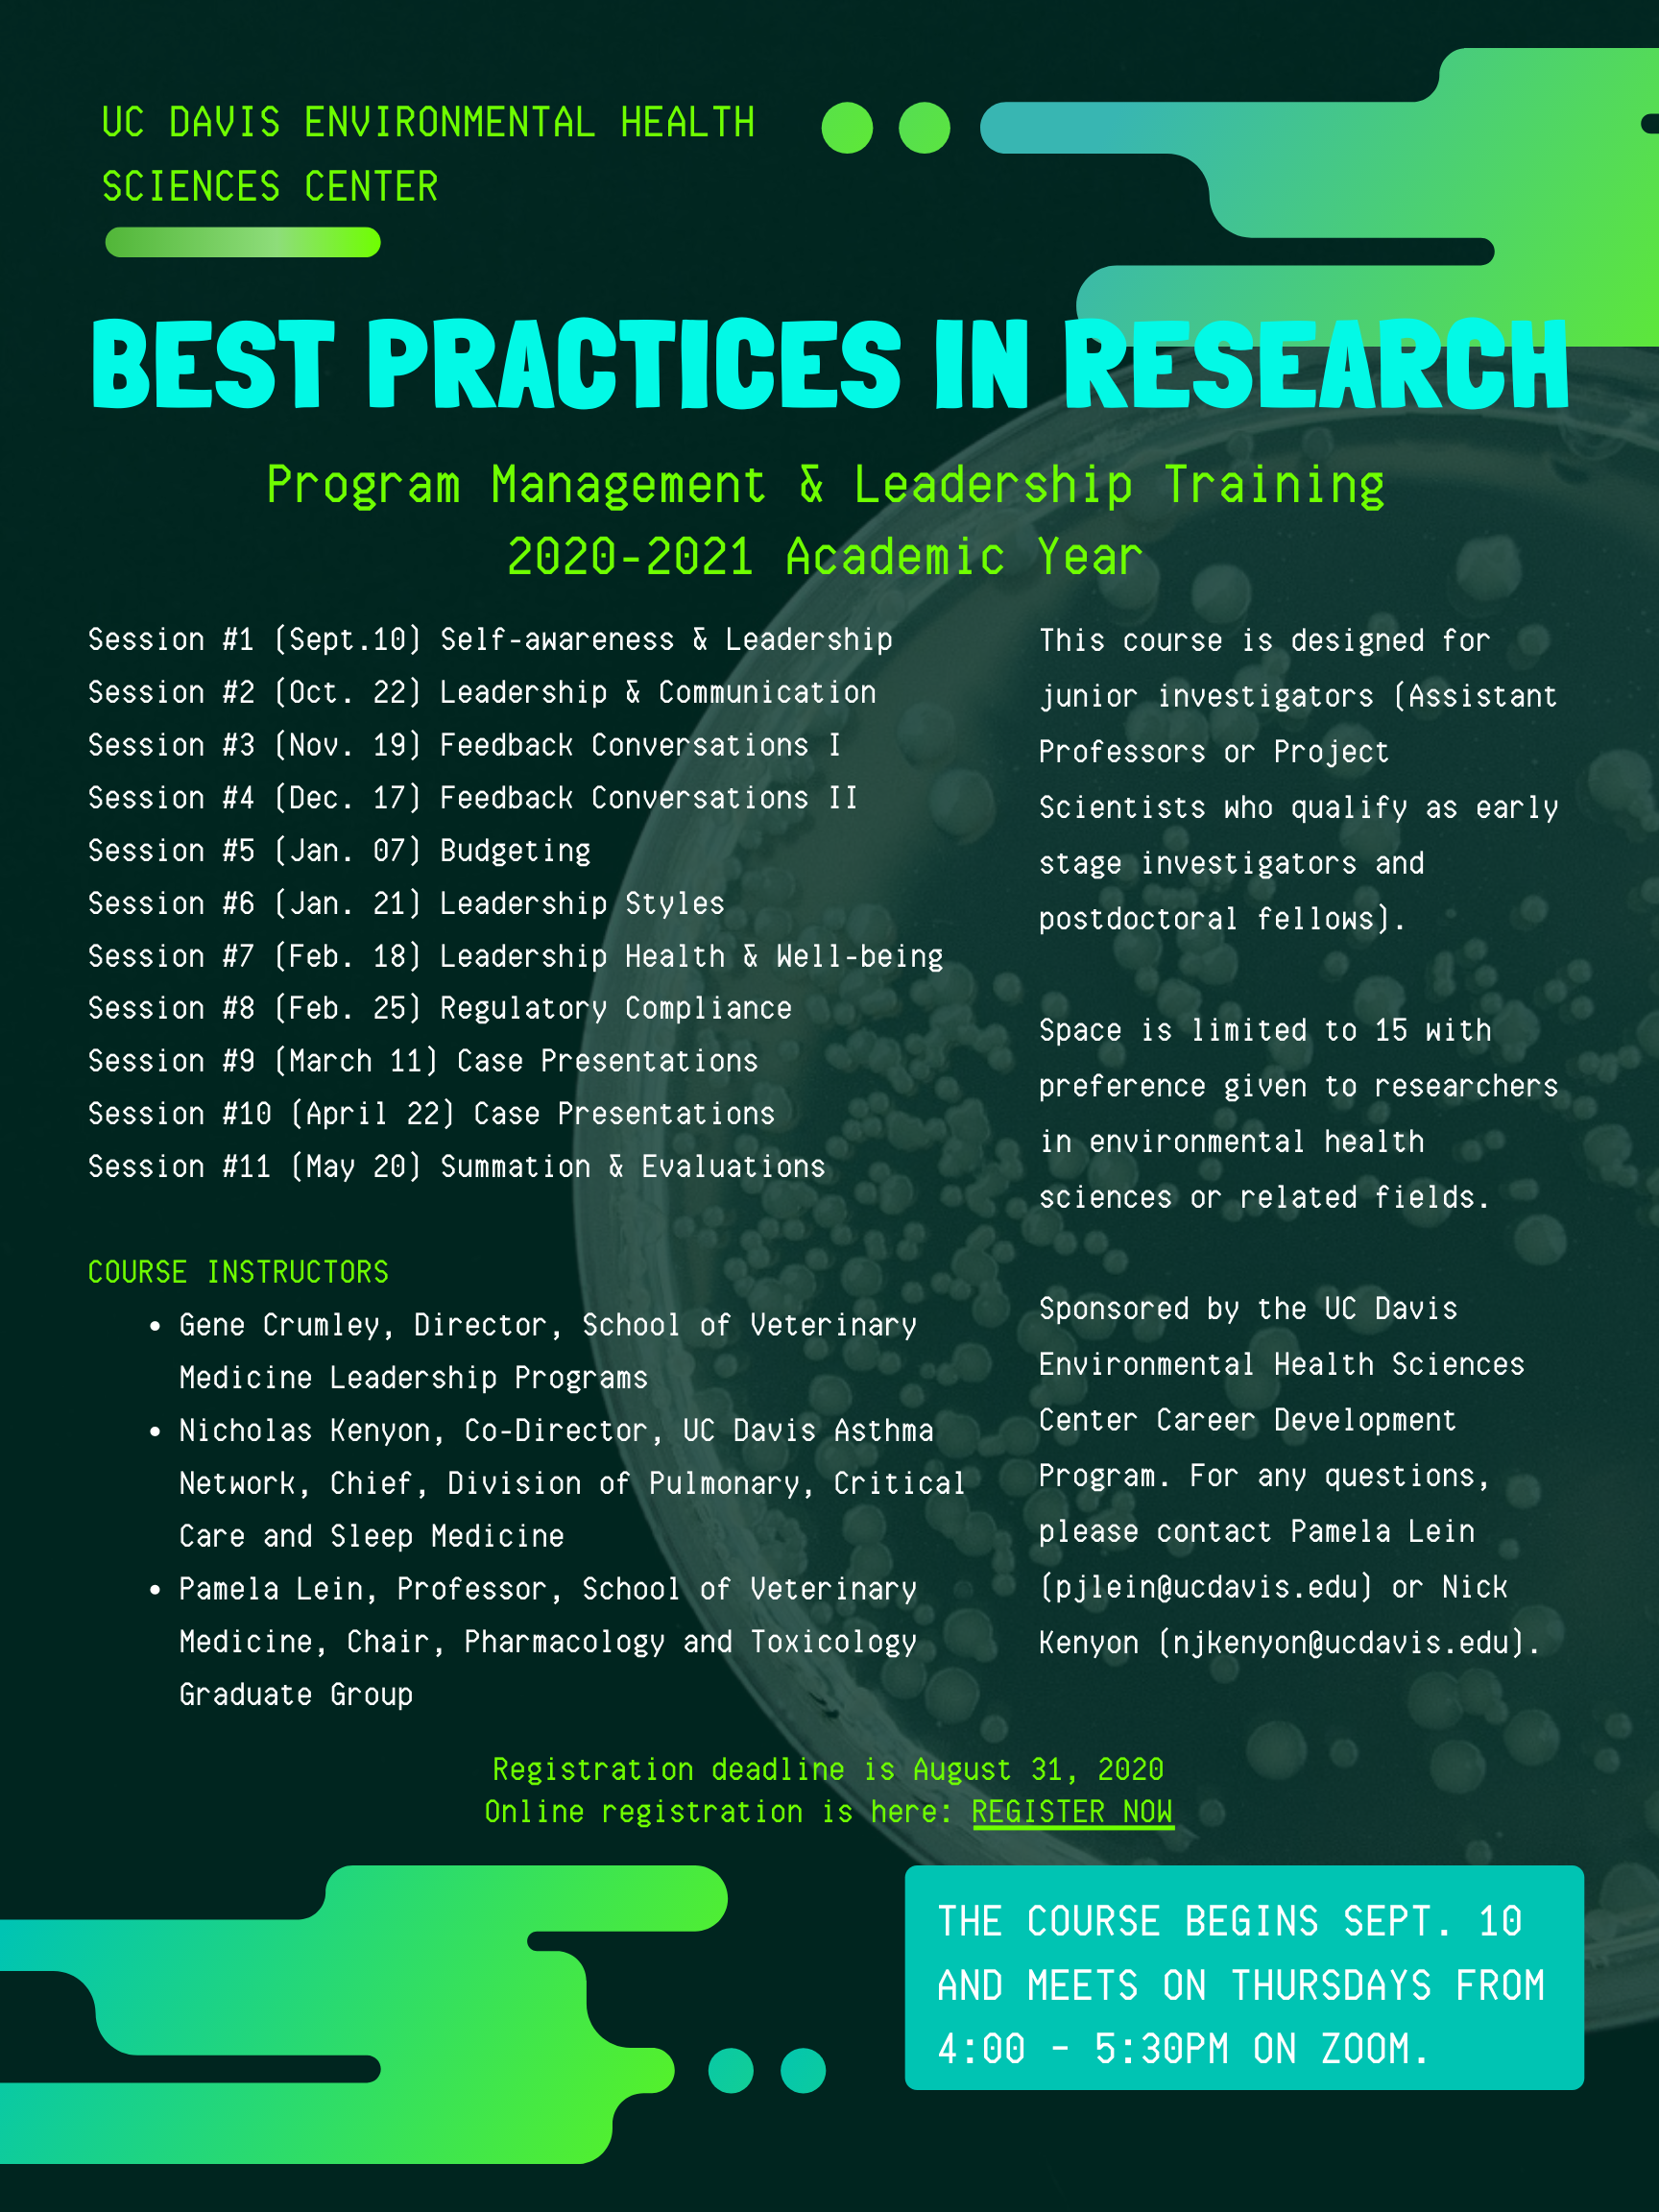 Best Online Workout Programs 2021 Training: Best Practices in Research | Environmental Health